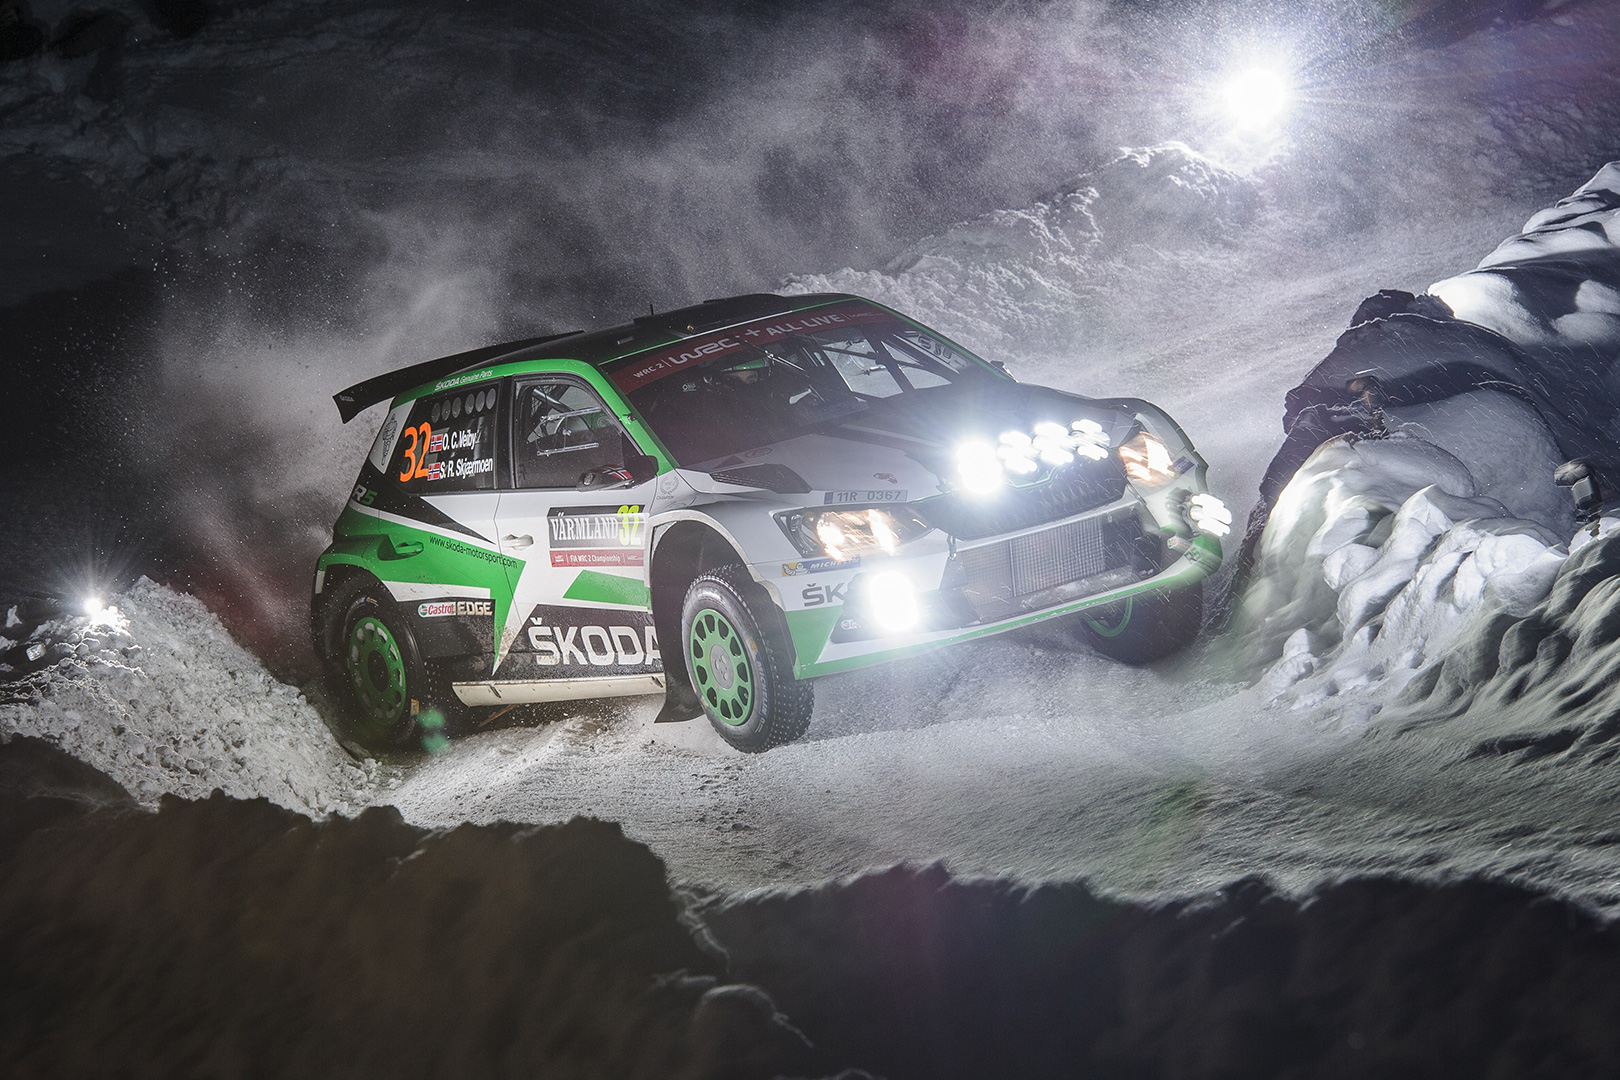 Eerik Pietarinen to Make His Debut with ŠKODA Motorsport at Rally Sweden